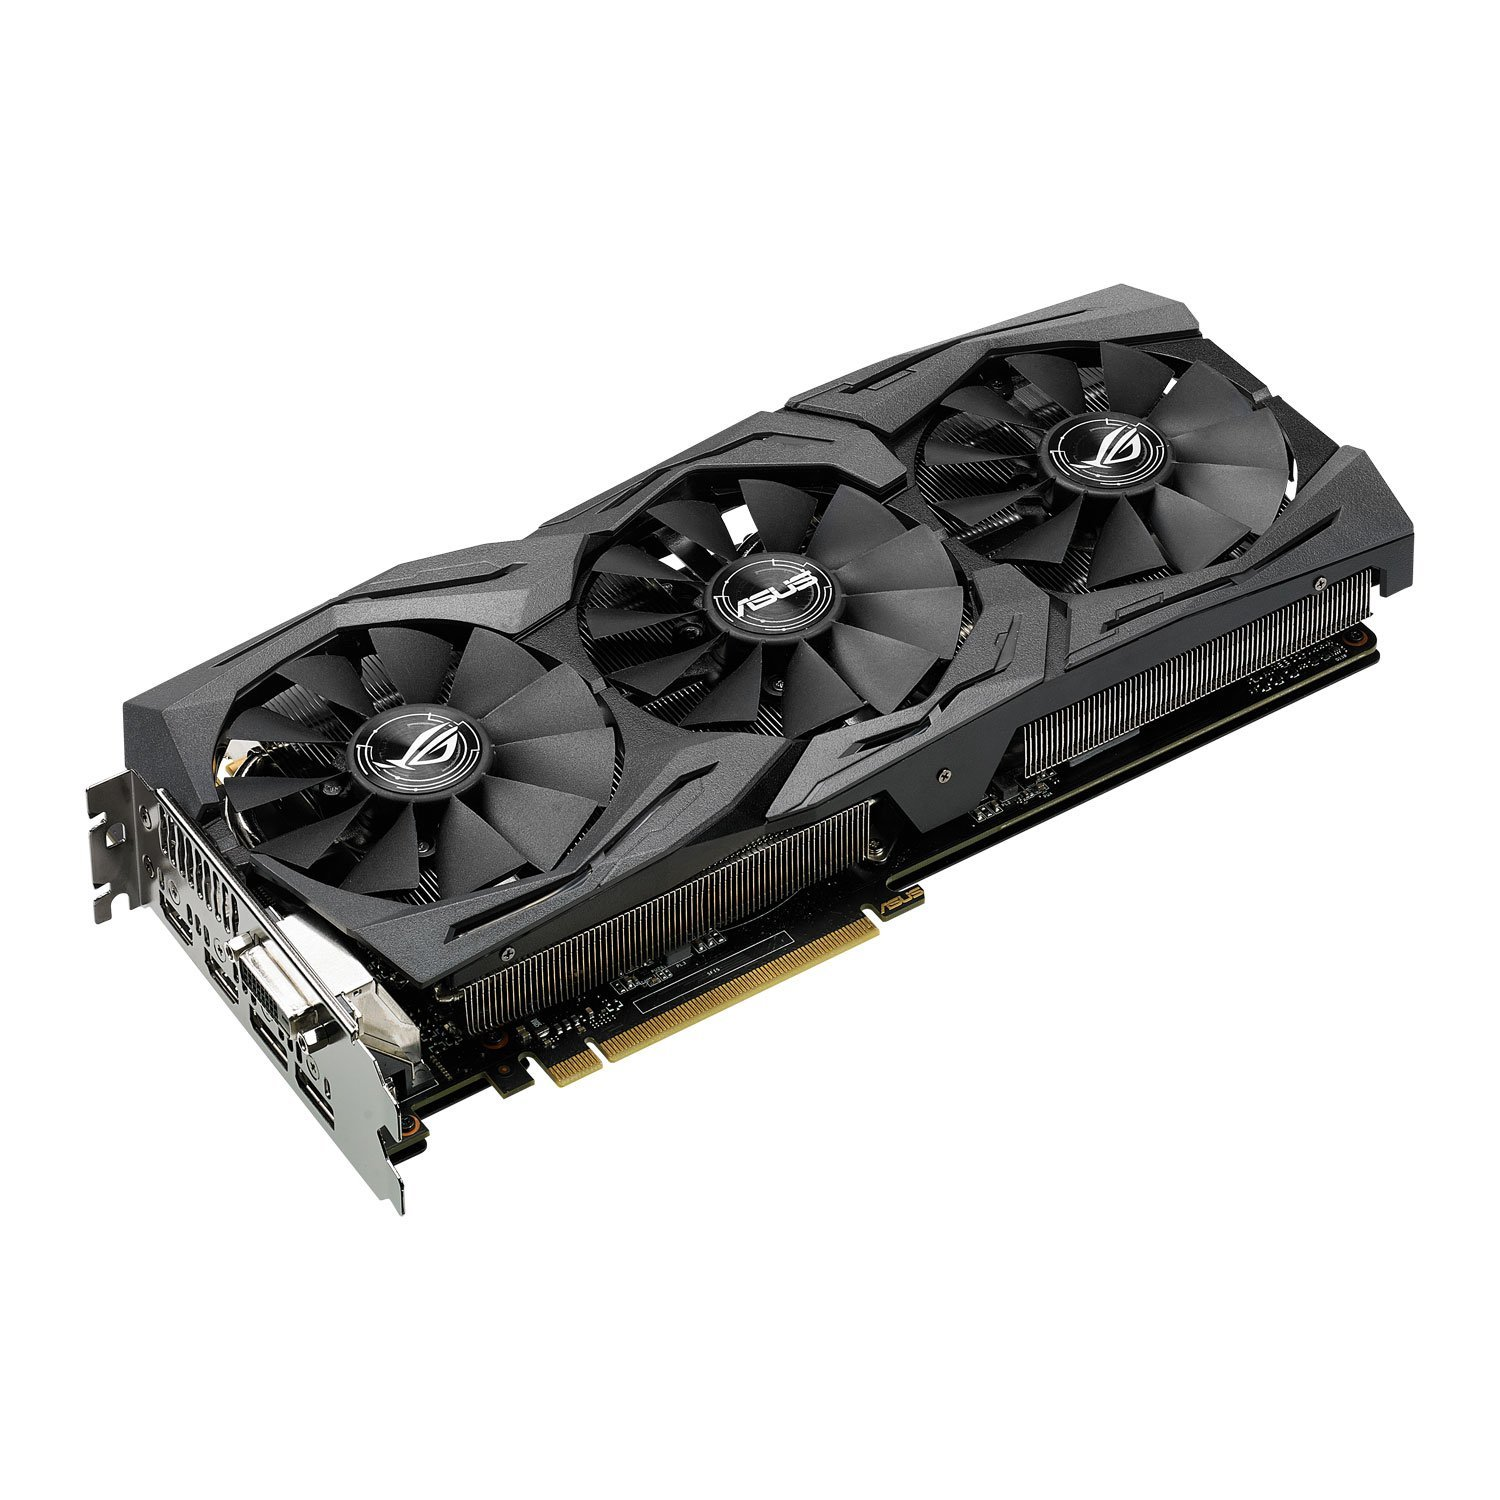 Asus ROG Strix GeForce GTX1060 6G Gaming Grafikkarte Amazon puter & Zubehör